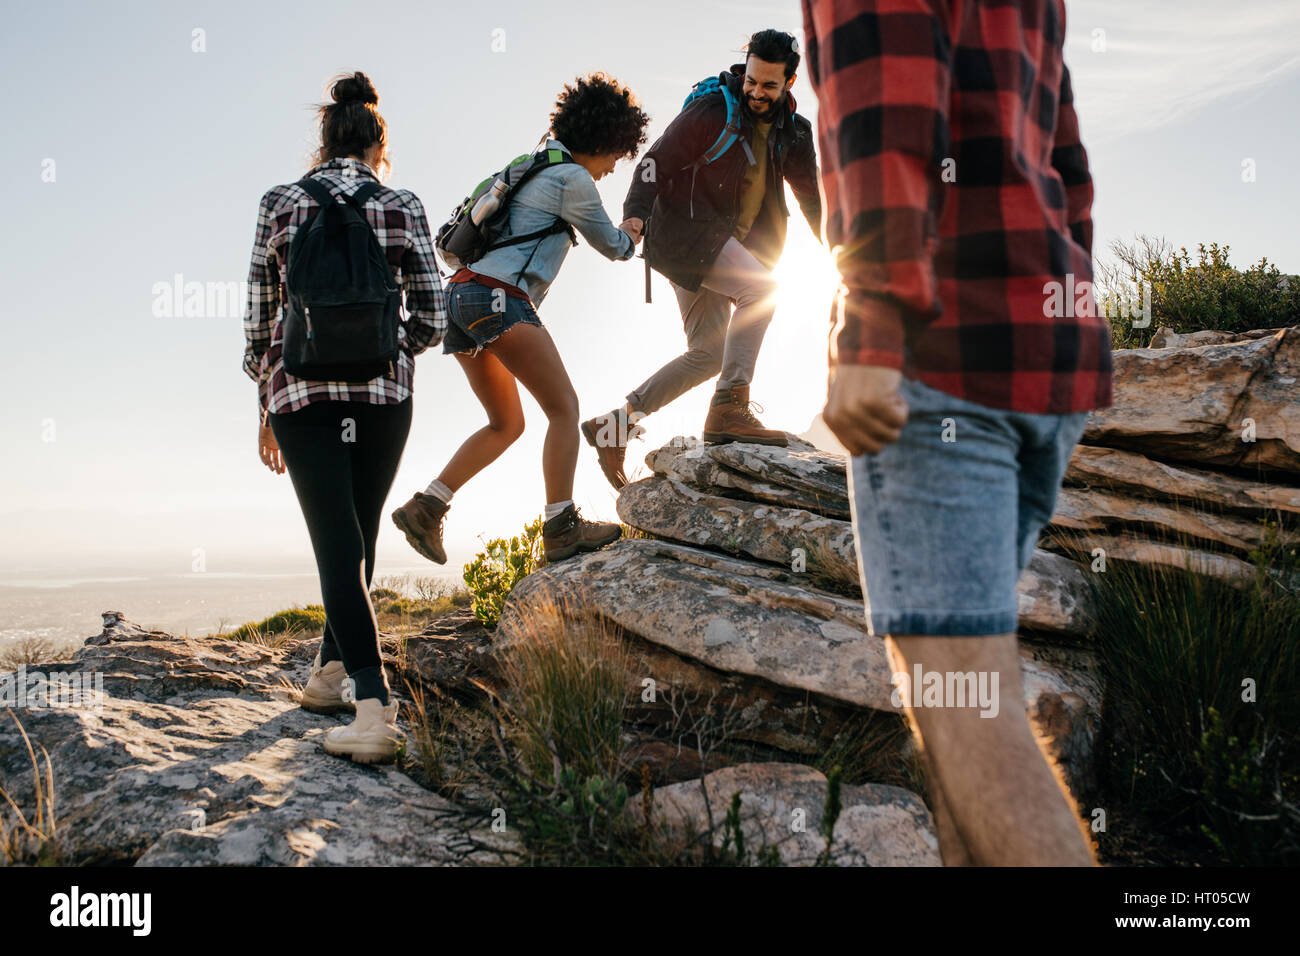 Group of hikers with backpacks walking on a mountain. Four friends making an excursion in the nature. - Stock Image